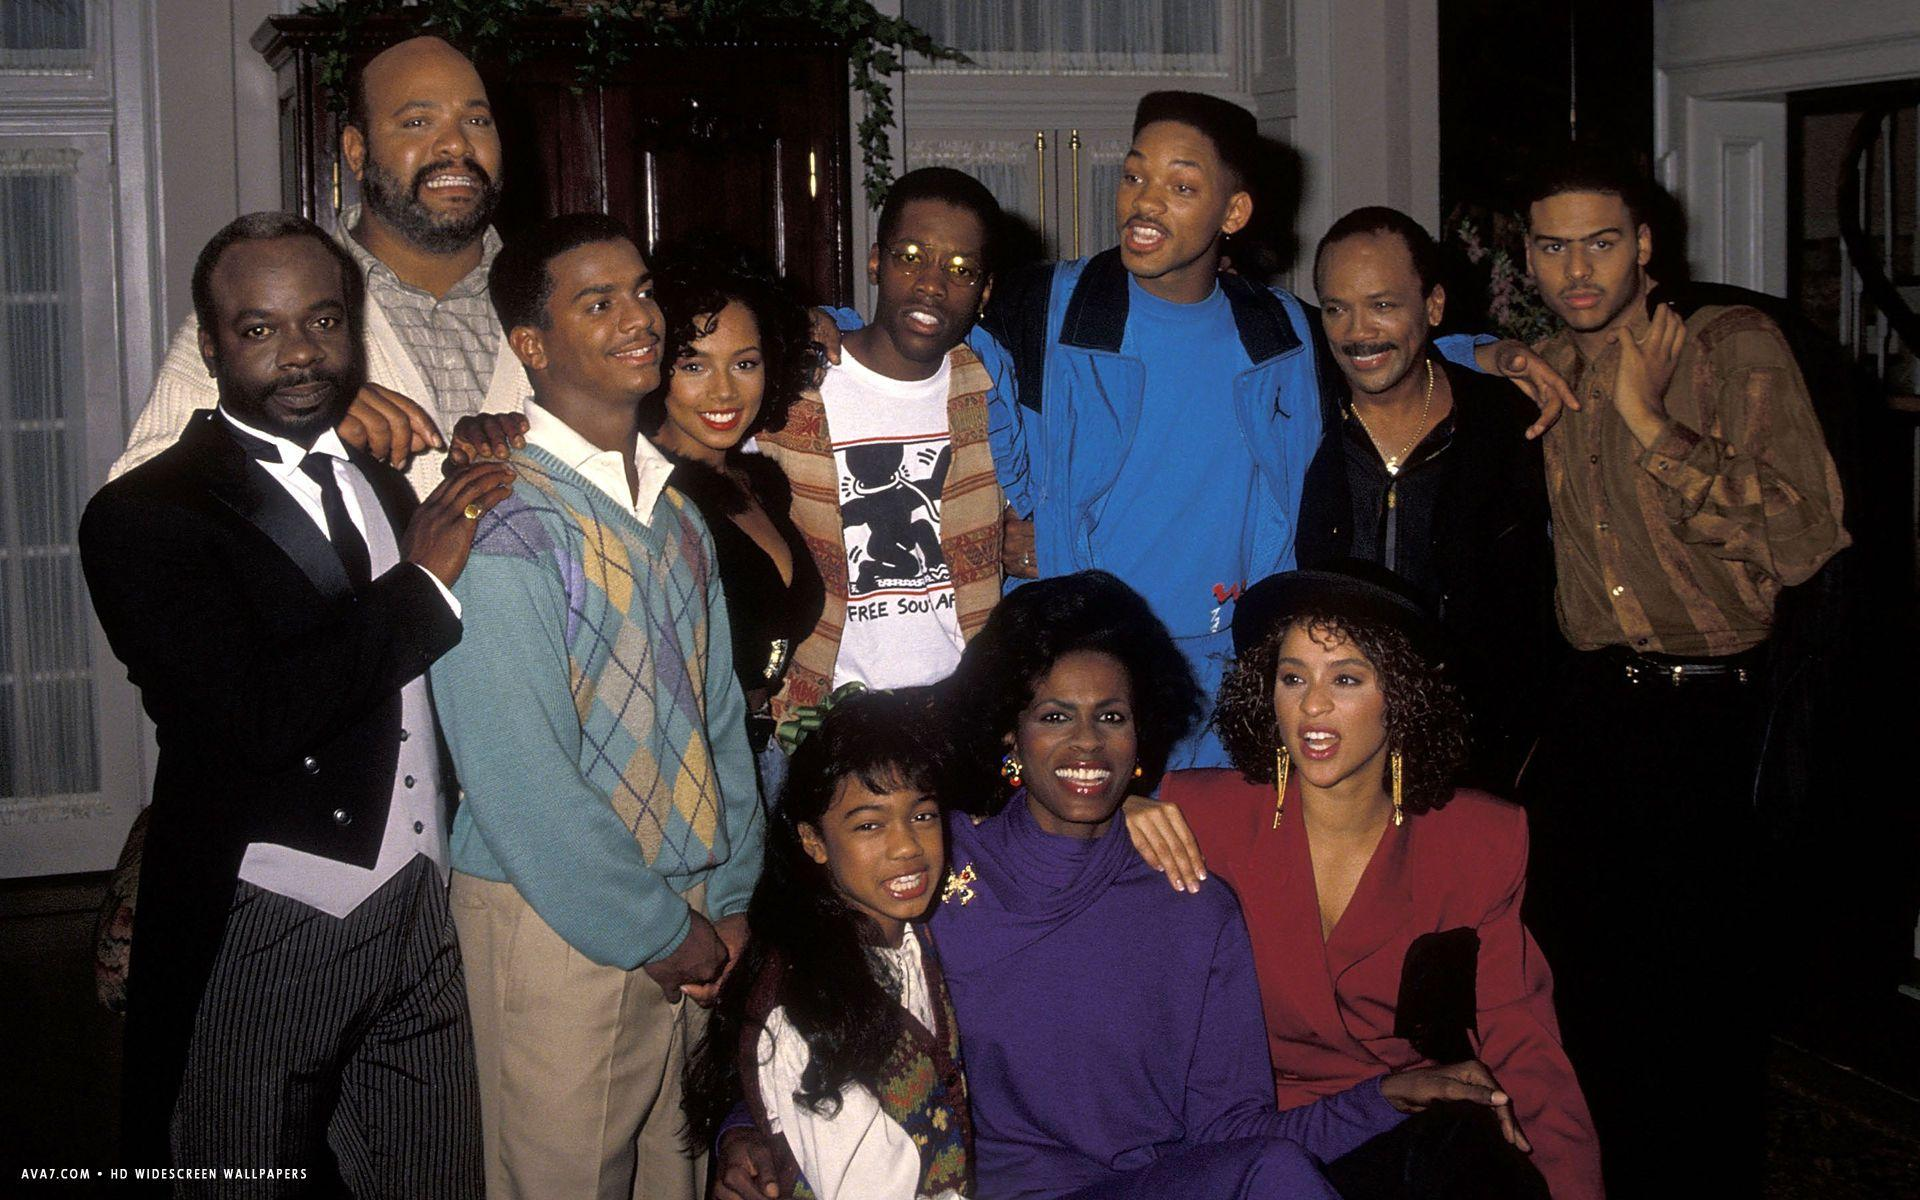 fresh prince of bel air tv series show hd widescreen wallpapers / tv